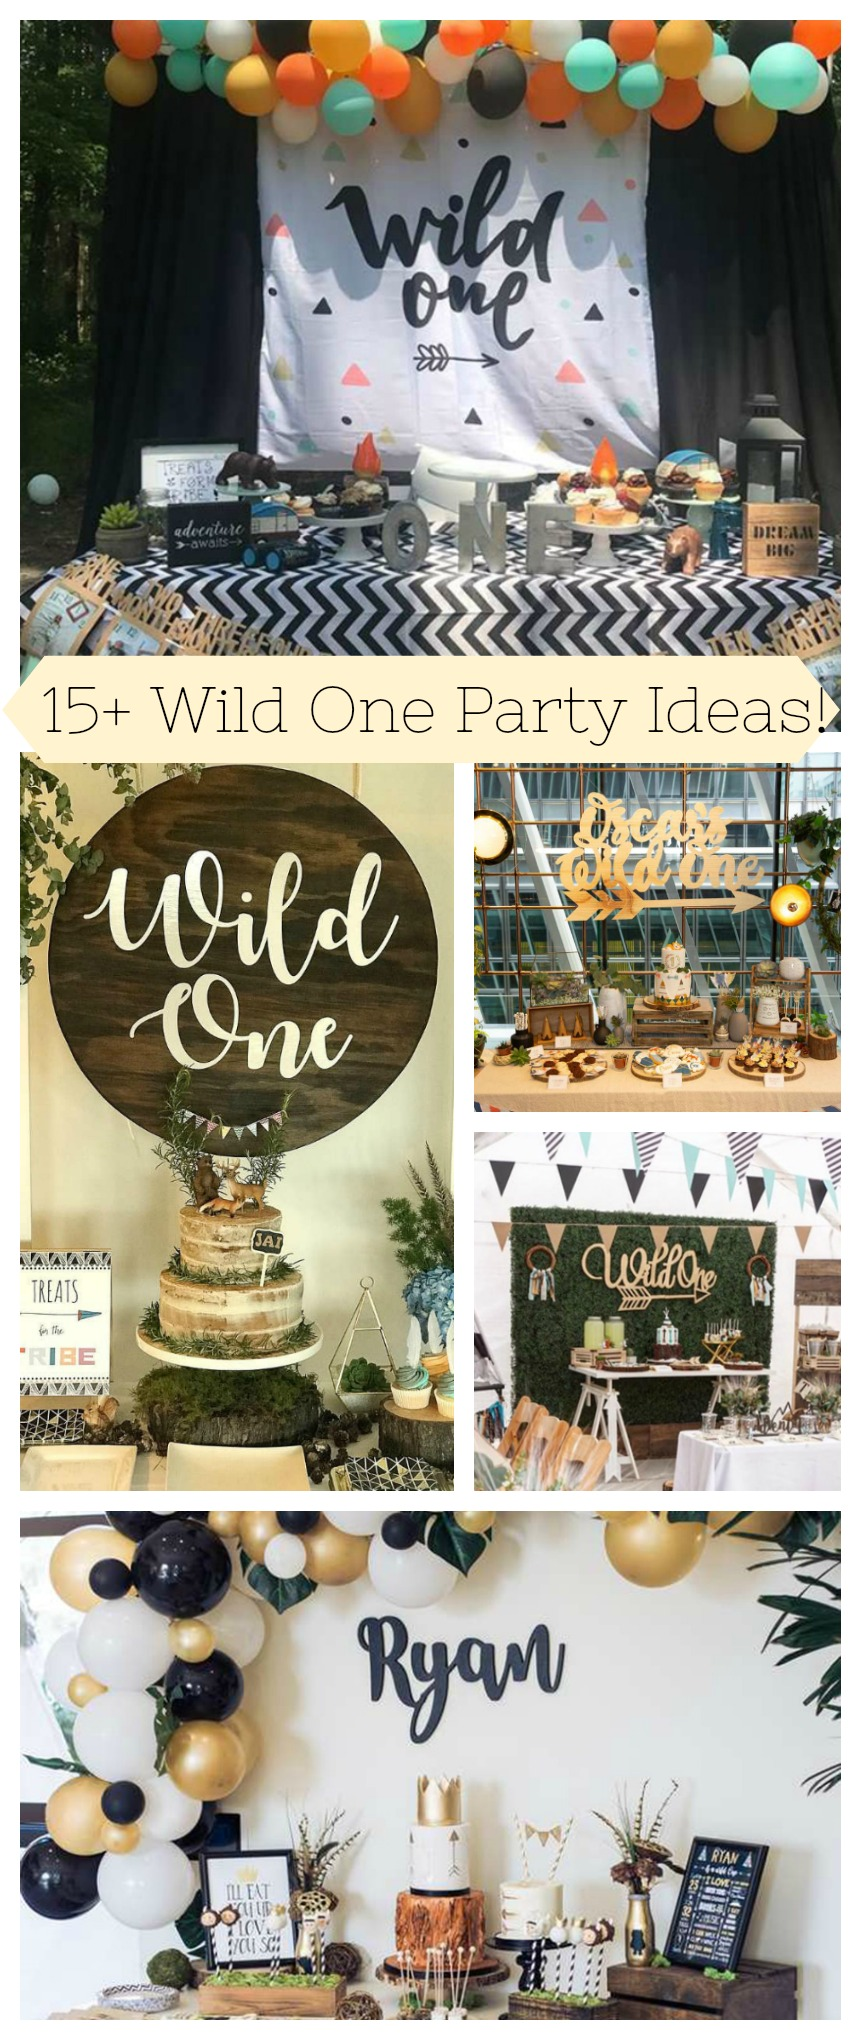 15+ Wild One Party Ideas on B. Lovely Events!- #wildone #firstbirthday #Birthdaytheme #birthdayparty